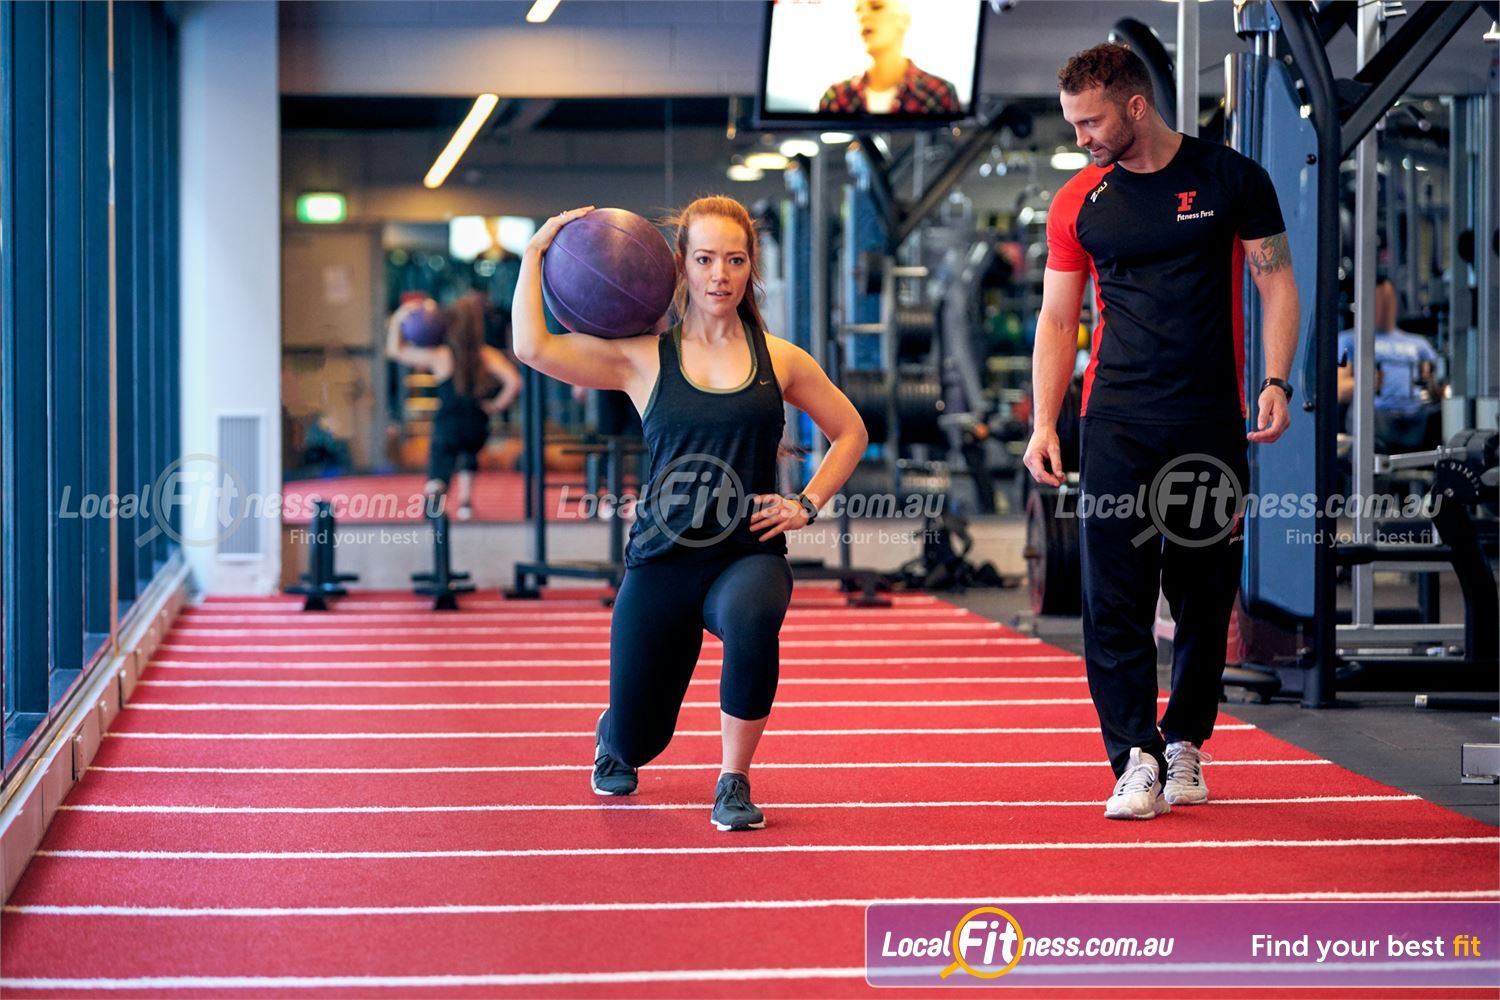 Fitness First Victoria Gardens Near Richmond North Use our indoor track to do walking lunges to build your legs.